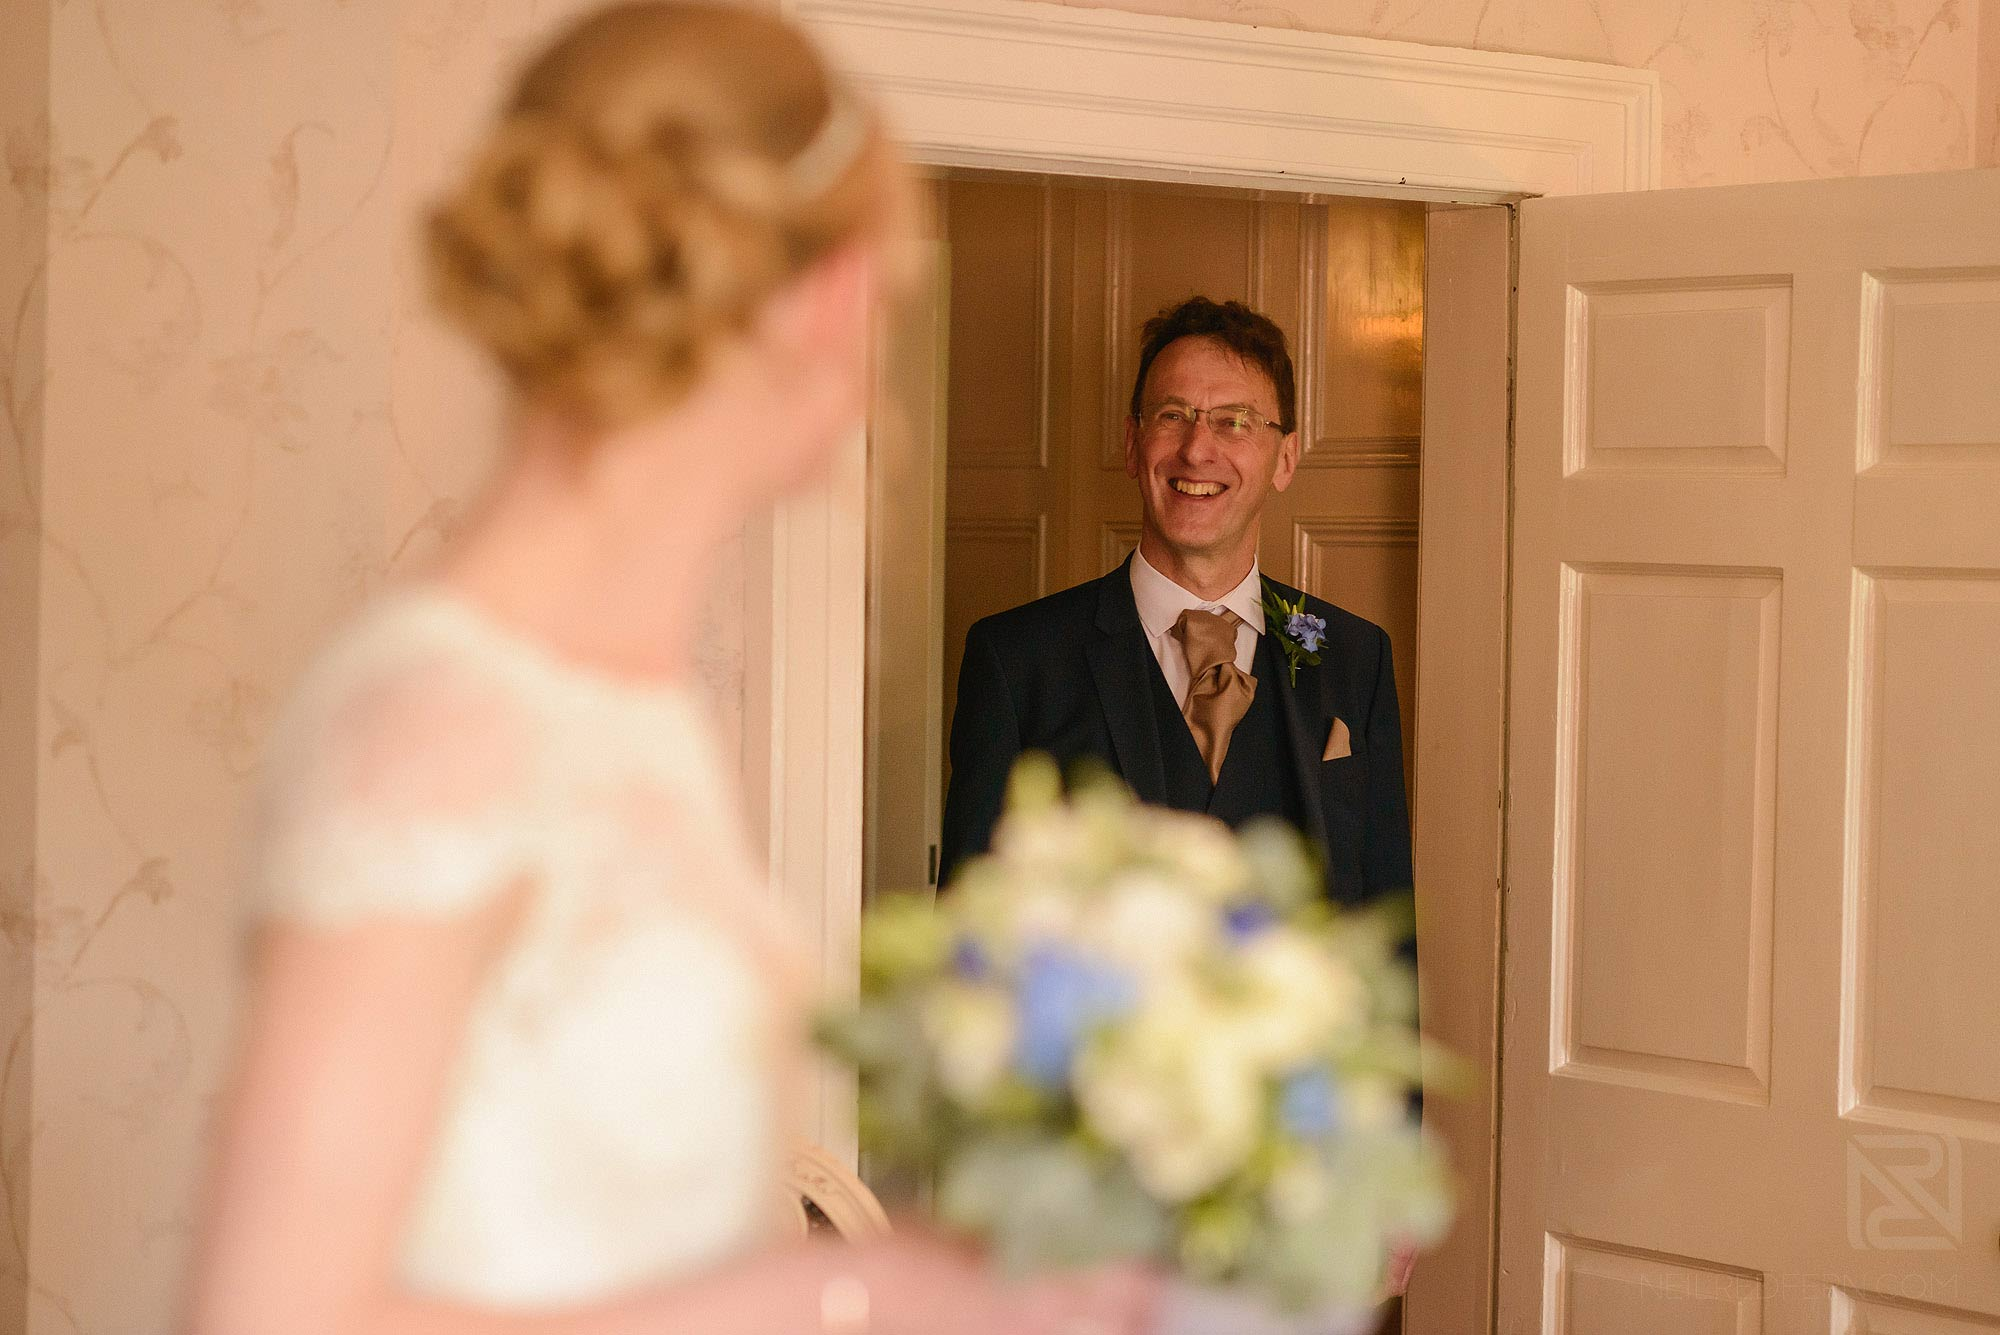 father of bride seeing bride in dress for first time